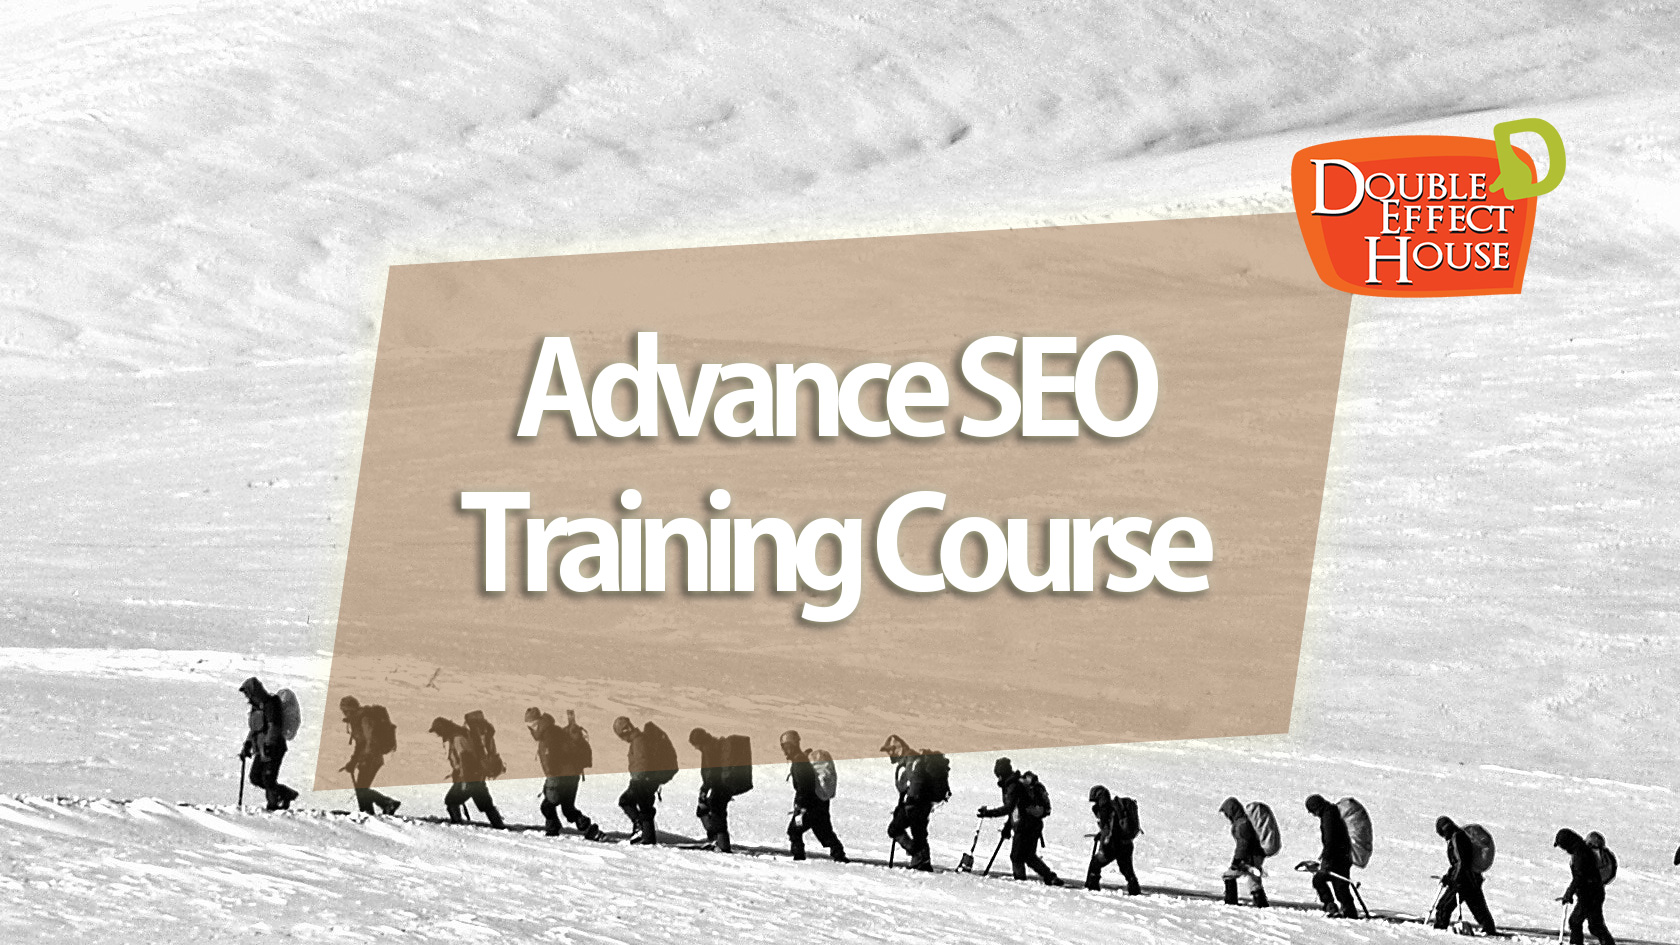 Advance SEO Training Course